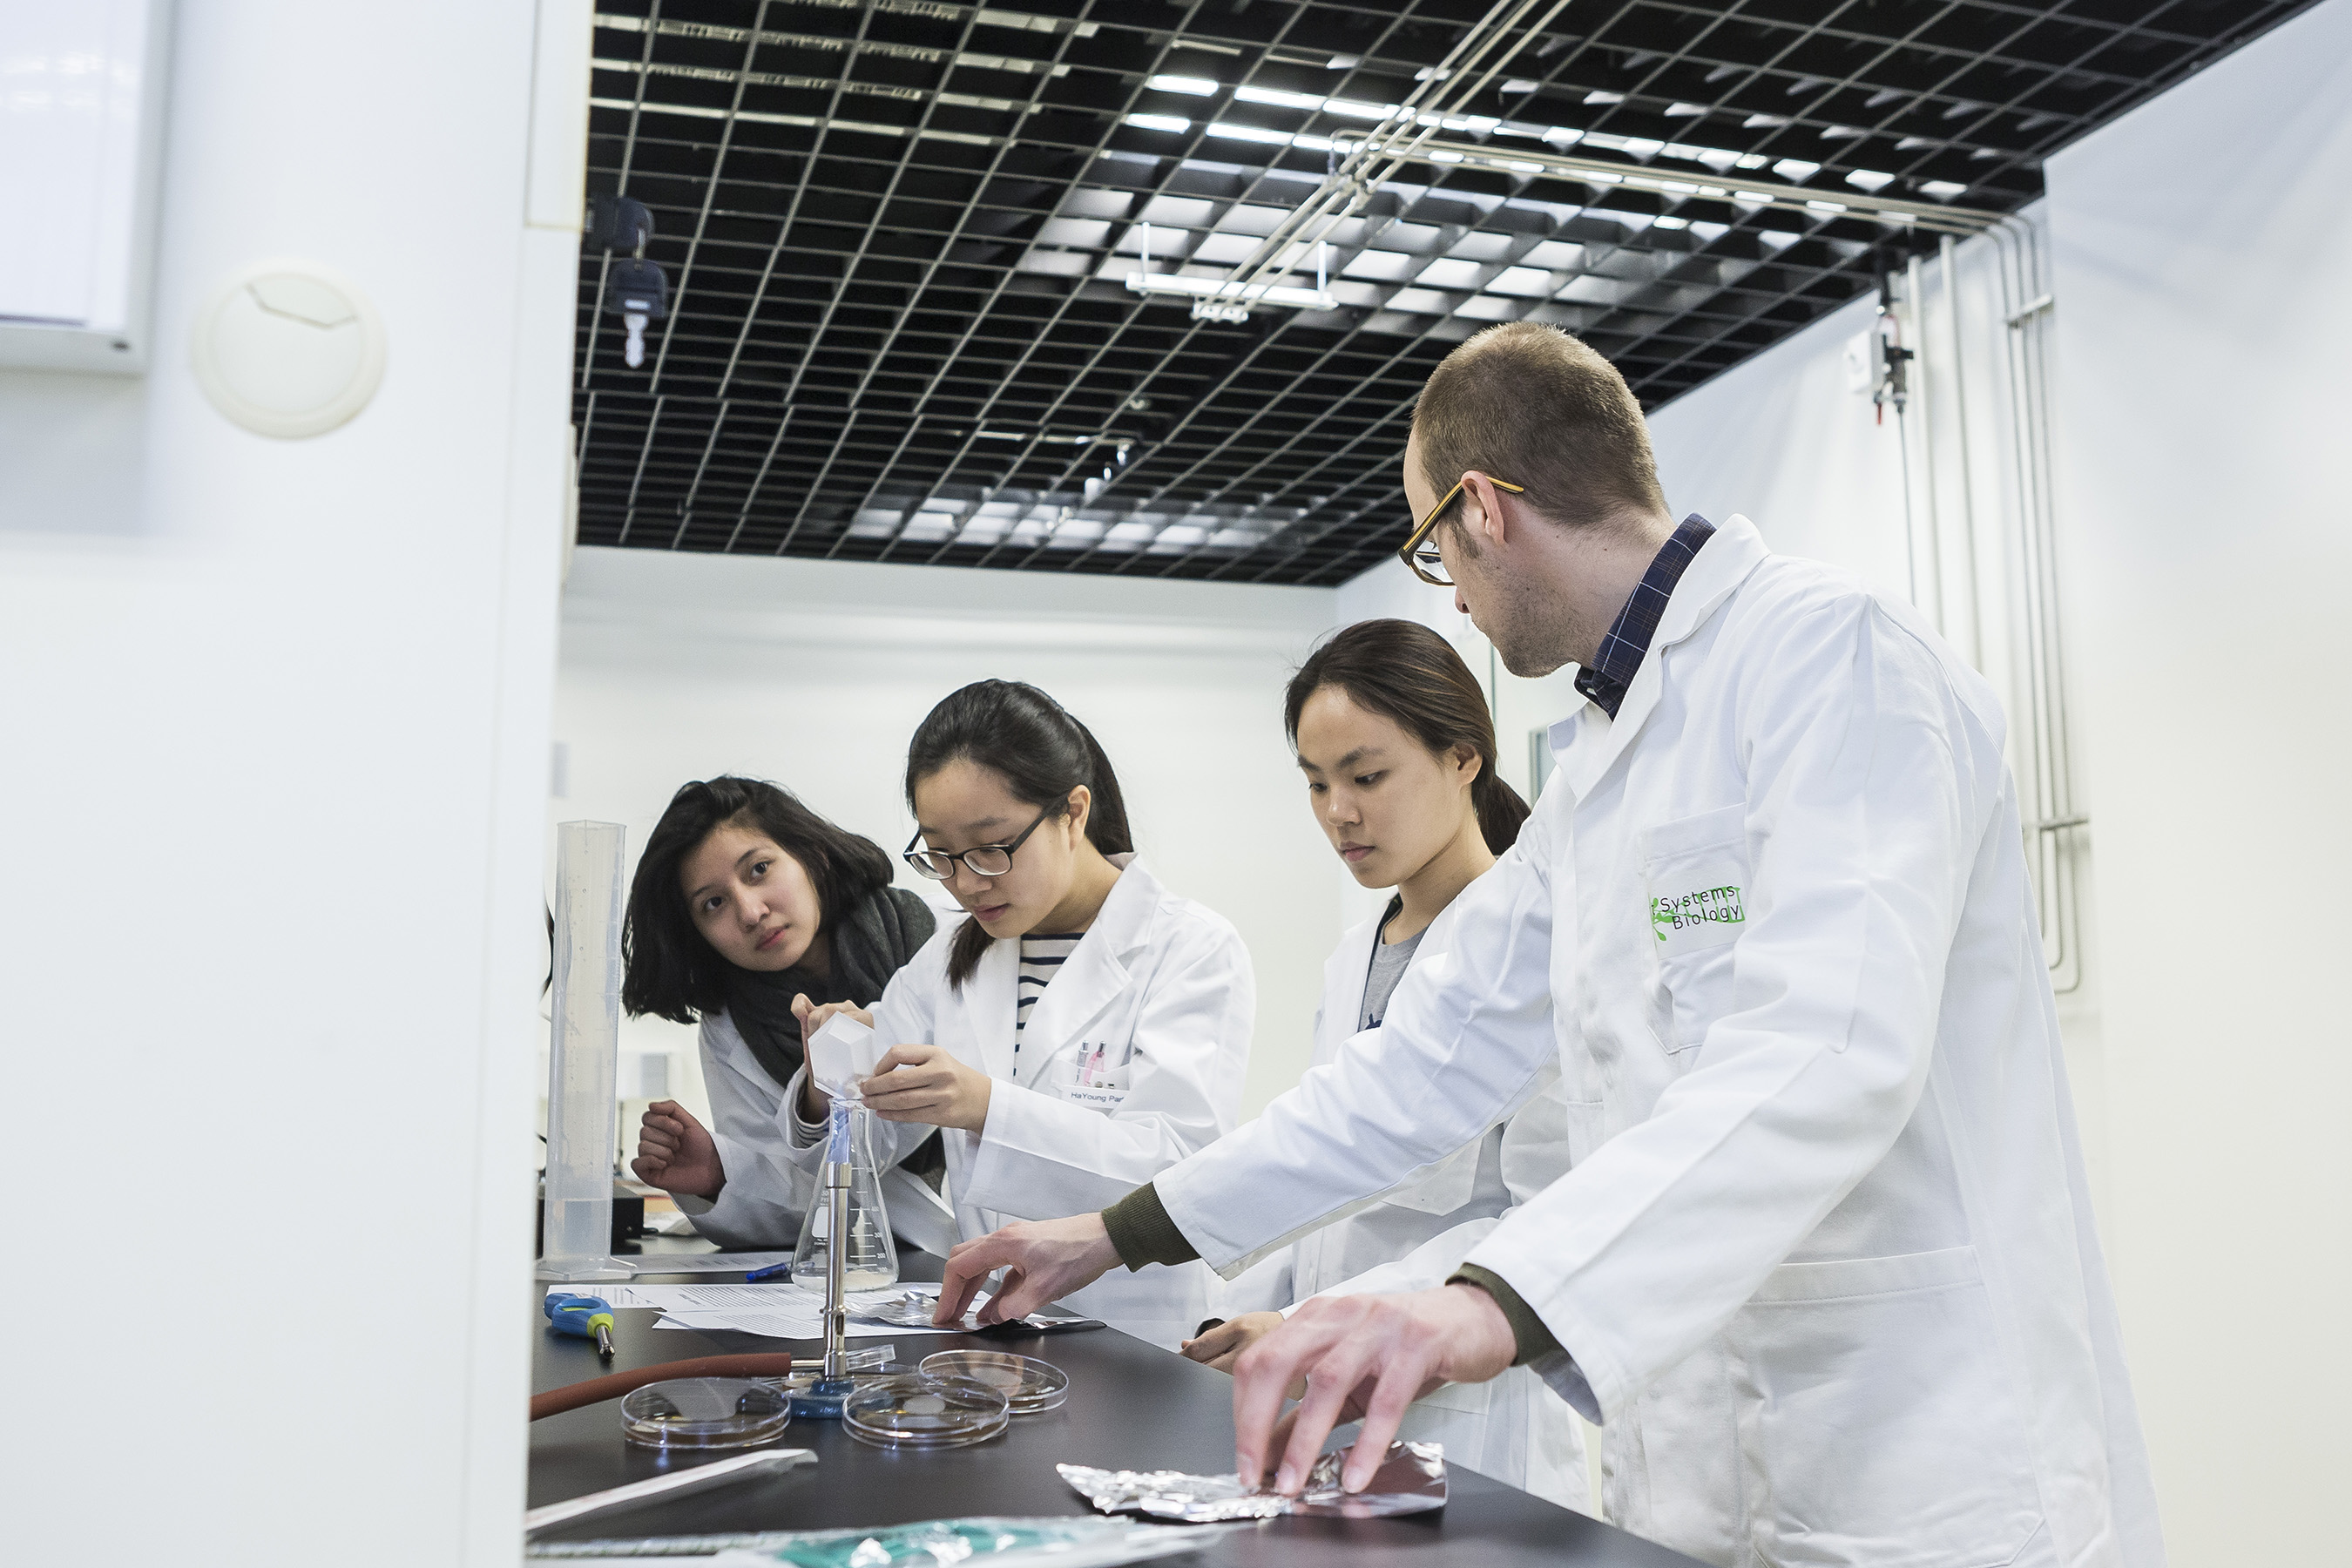 Ghent University Global Campus students doing experiments in the lab